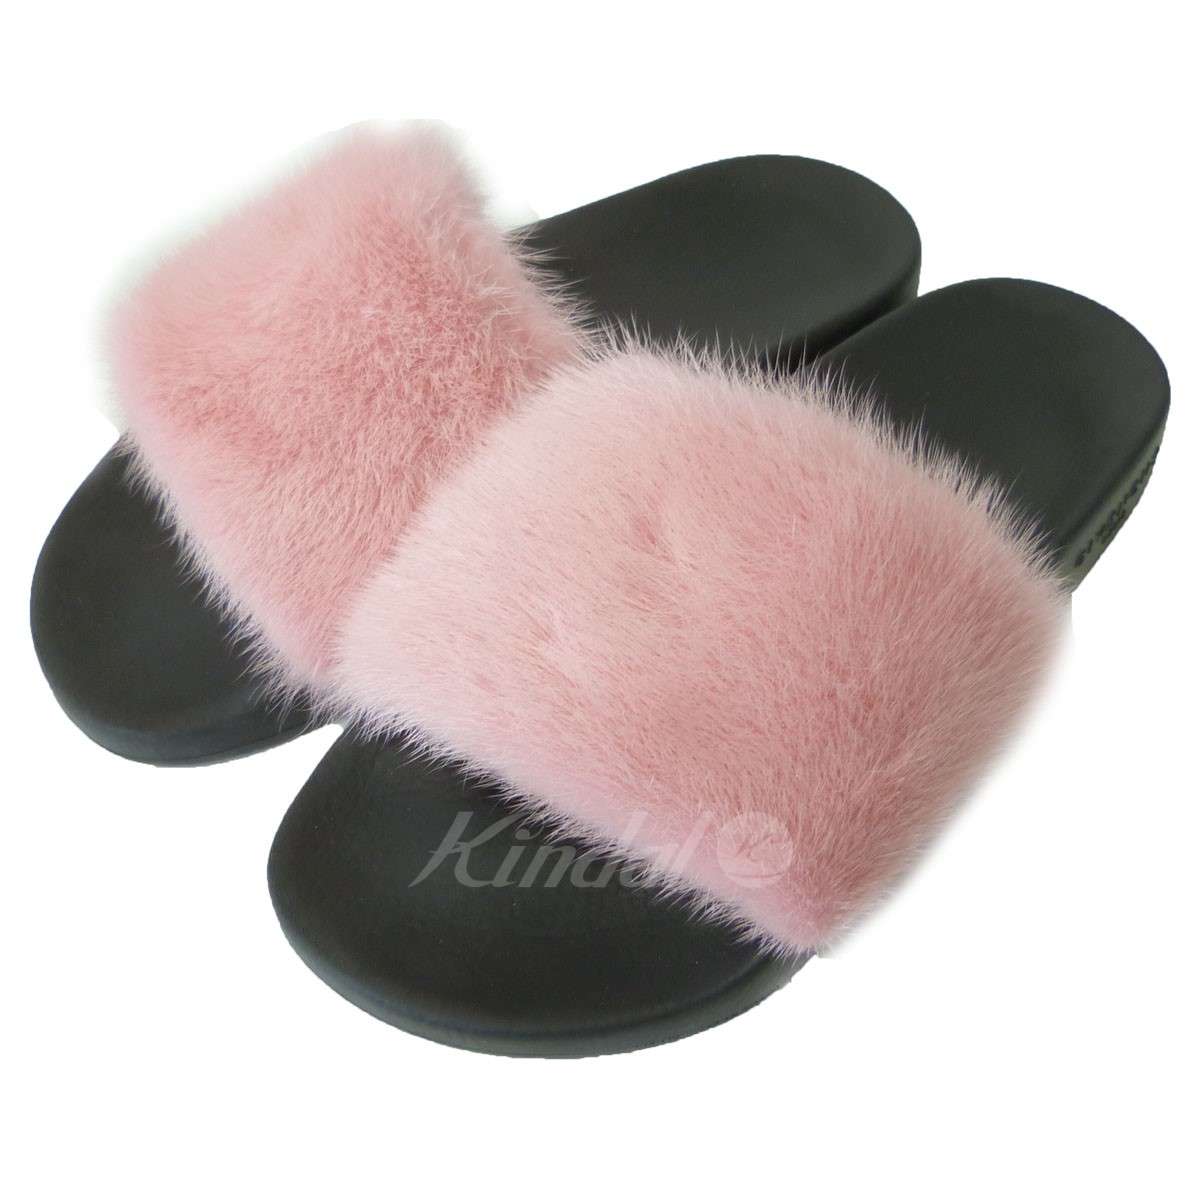 84837b80d865 kindal  GIVENCHY  17AW mink  amp  rubber sandals black X pink size ...